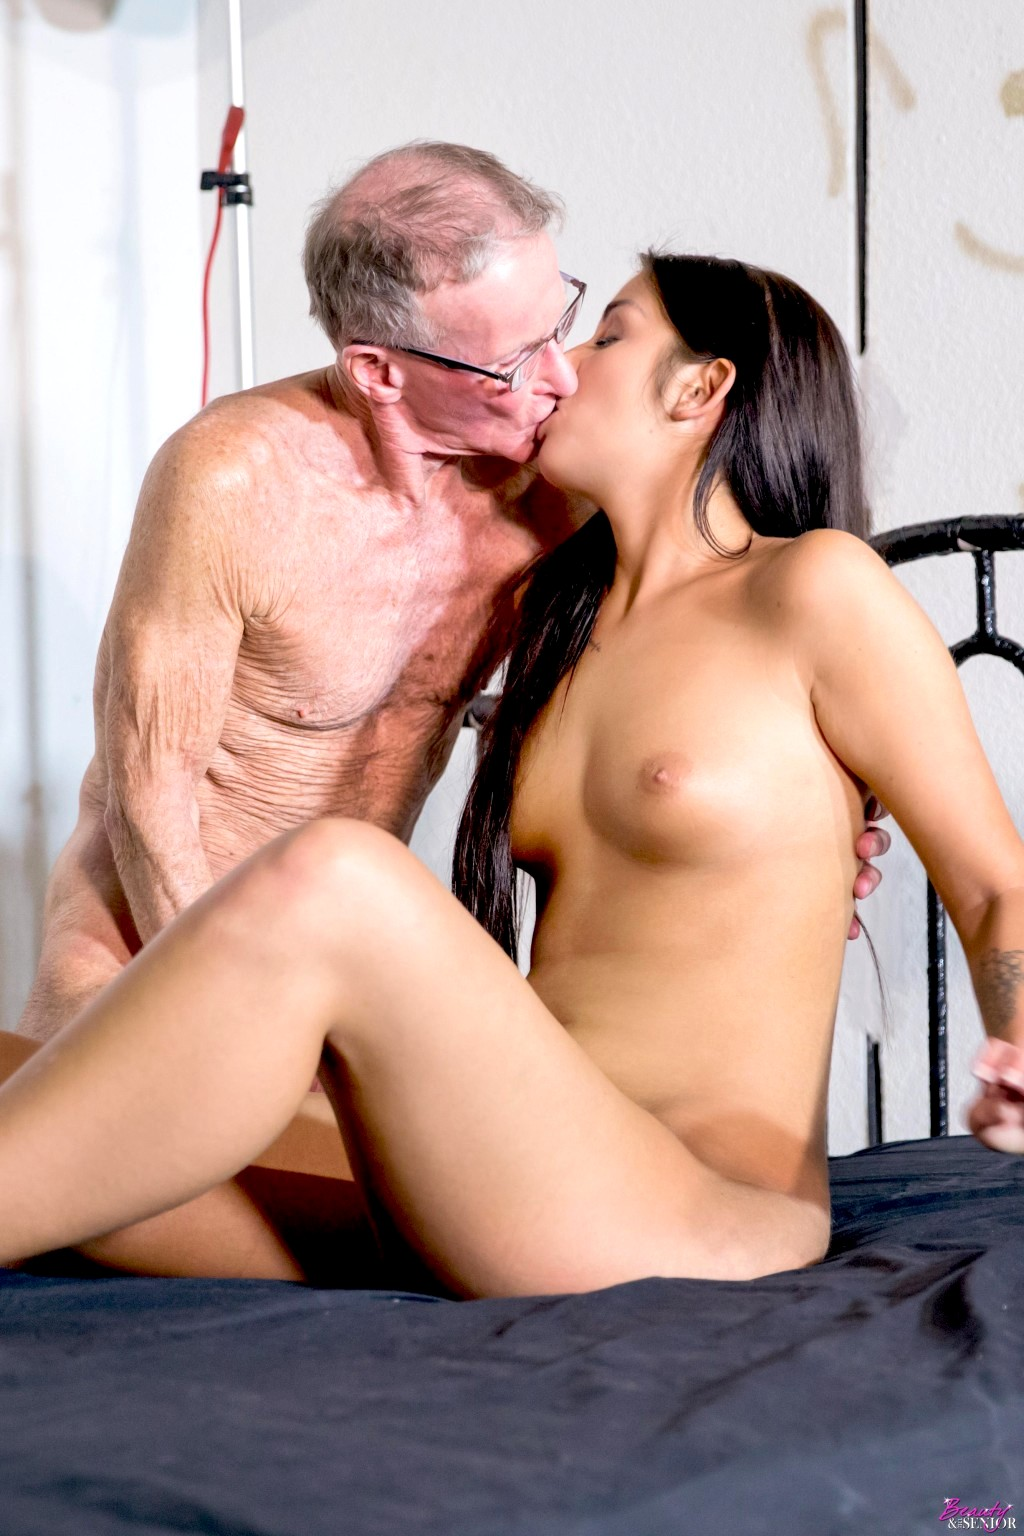 Free Asian Old And Young Porn Pics, Sexy Asian Pussy In Old And Young Sex On Asian Porn Life